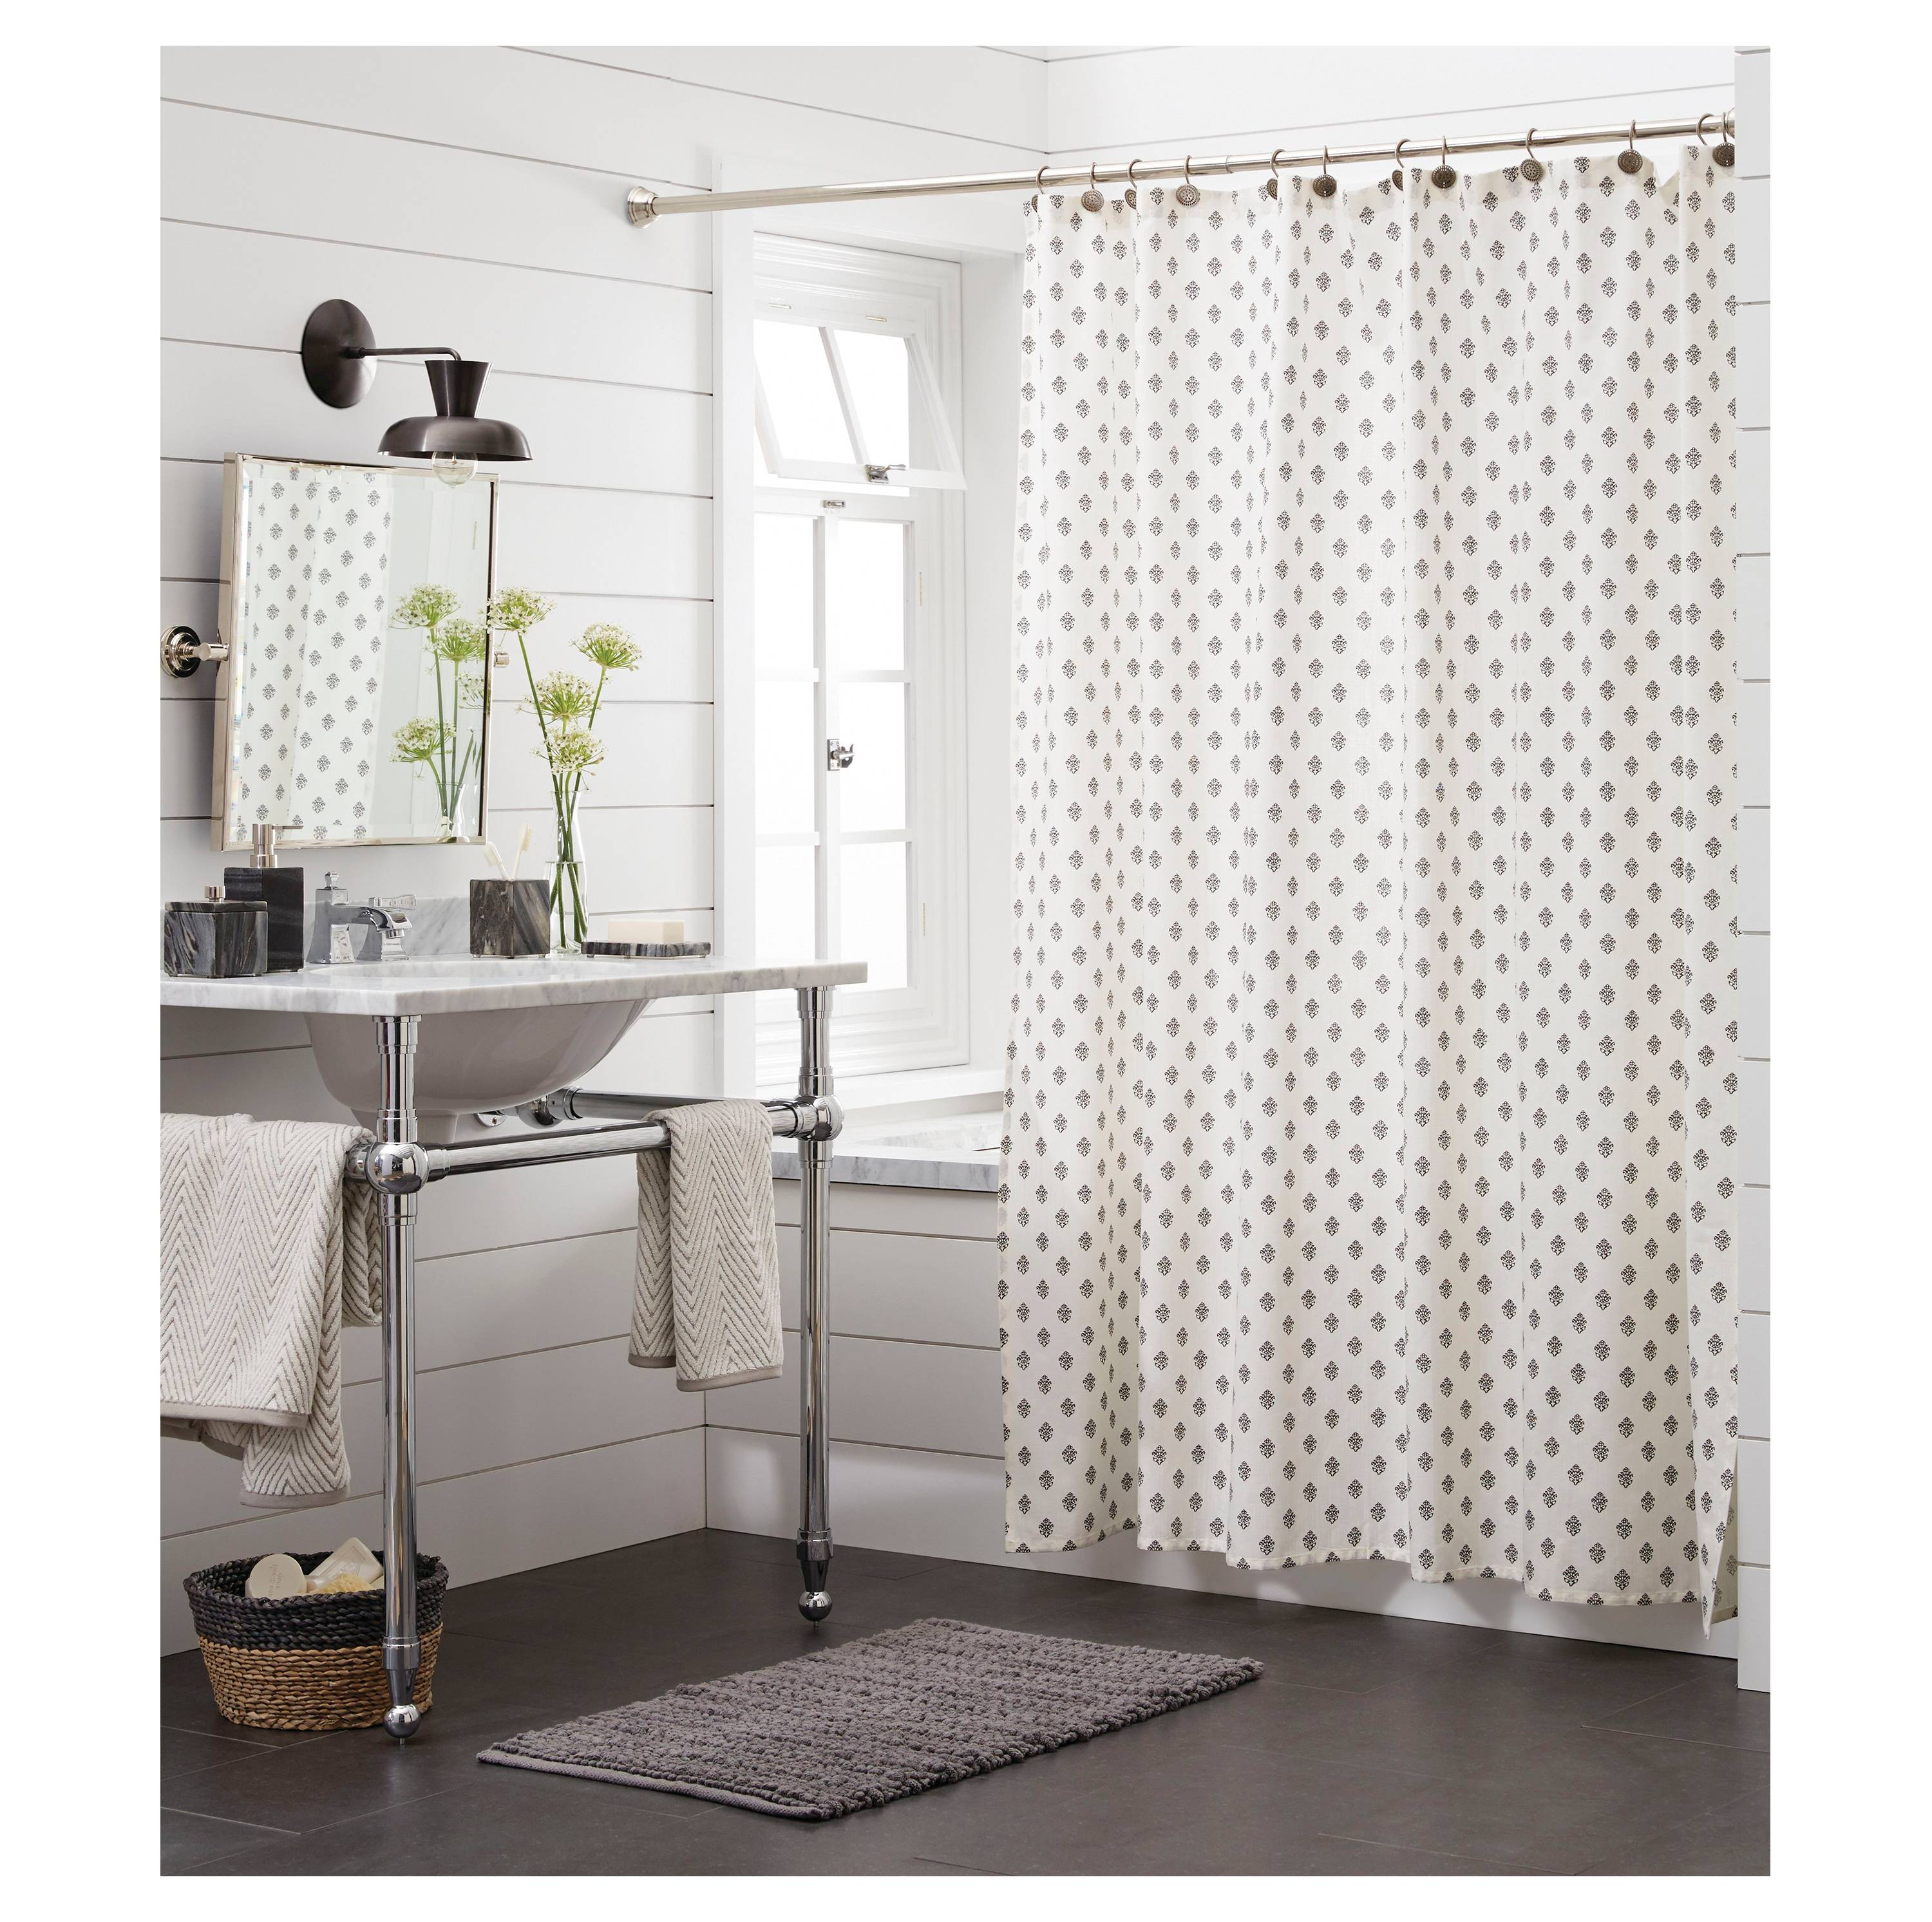 Black And White Flower Shower Curtain. Our New Shower Curtain 10 Curtains You Might Like The intended for  measurements 3000 X Black And White Floral Print Ideas